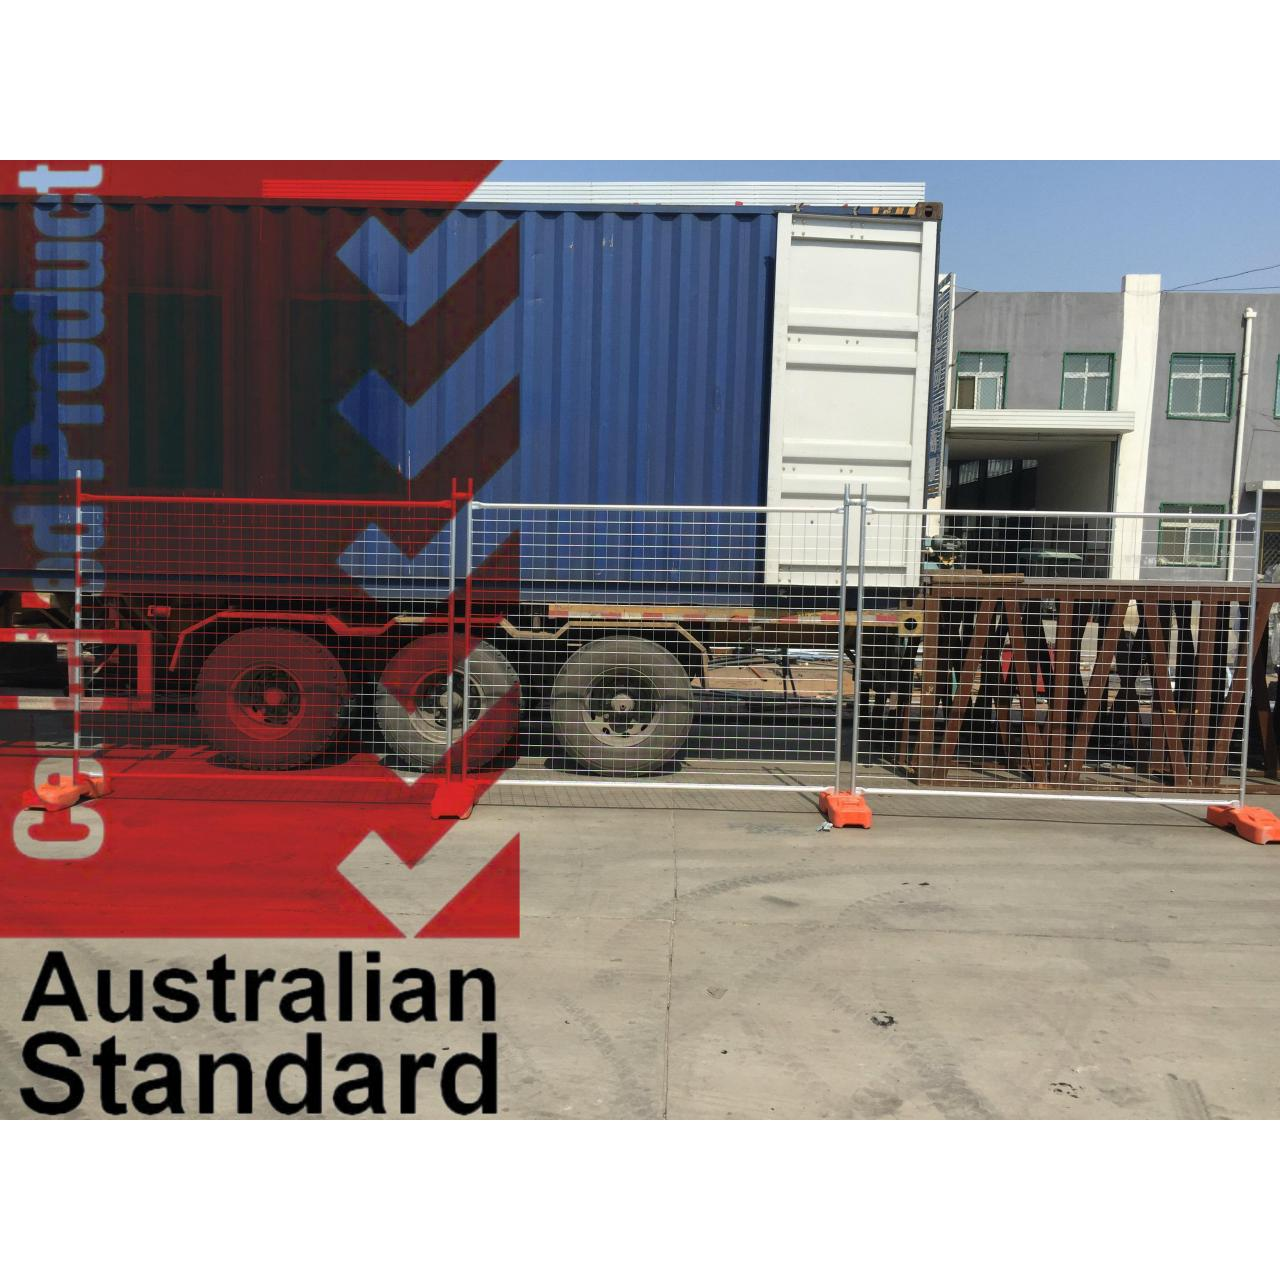 Cheap Economic Temporary Fence For Sales Business -17 Microns Zinc Layer HDG before Weld for sale